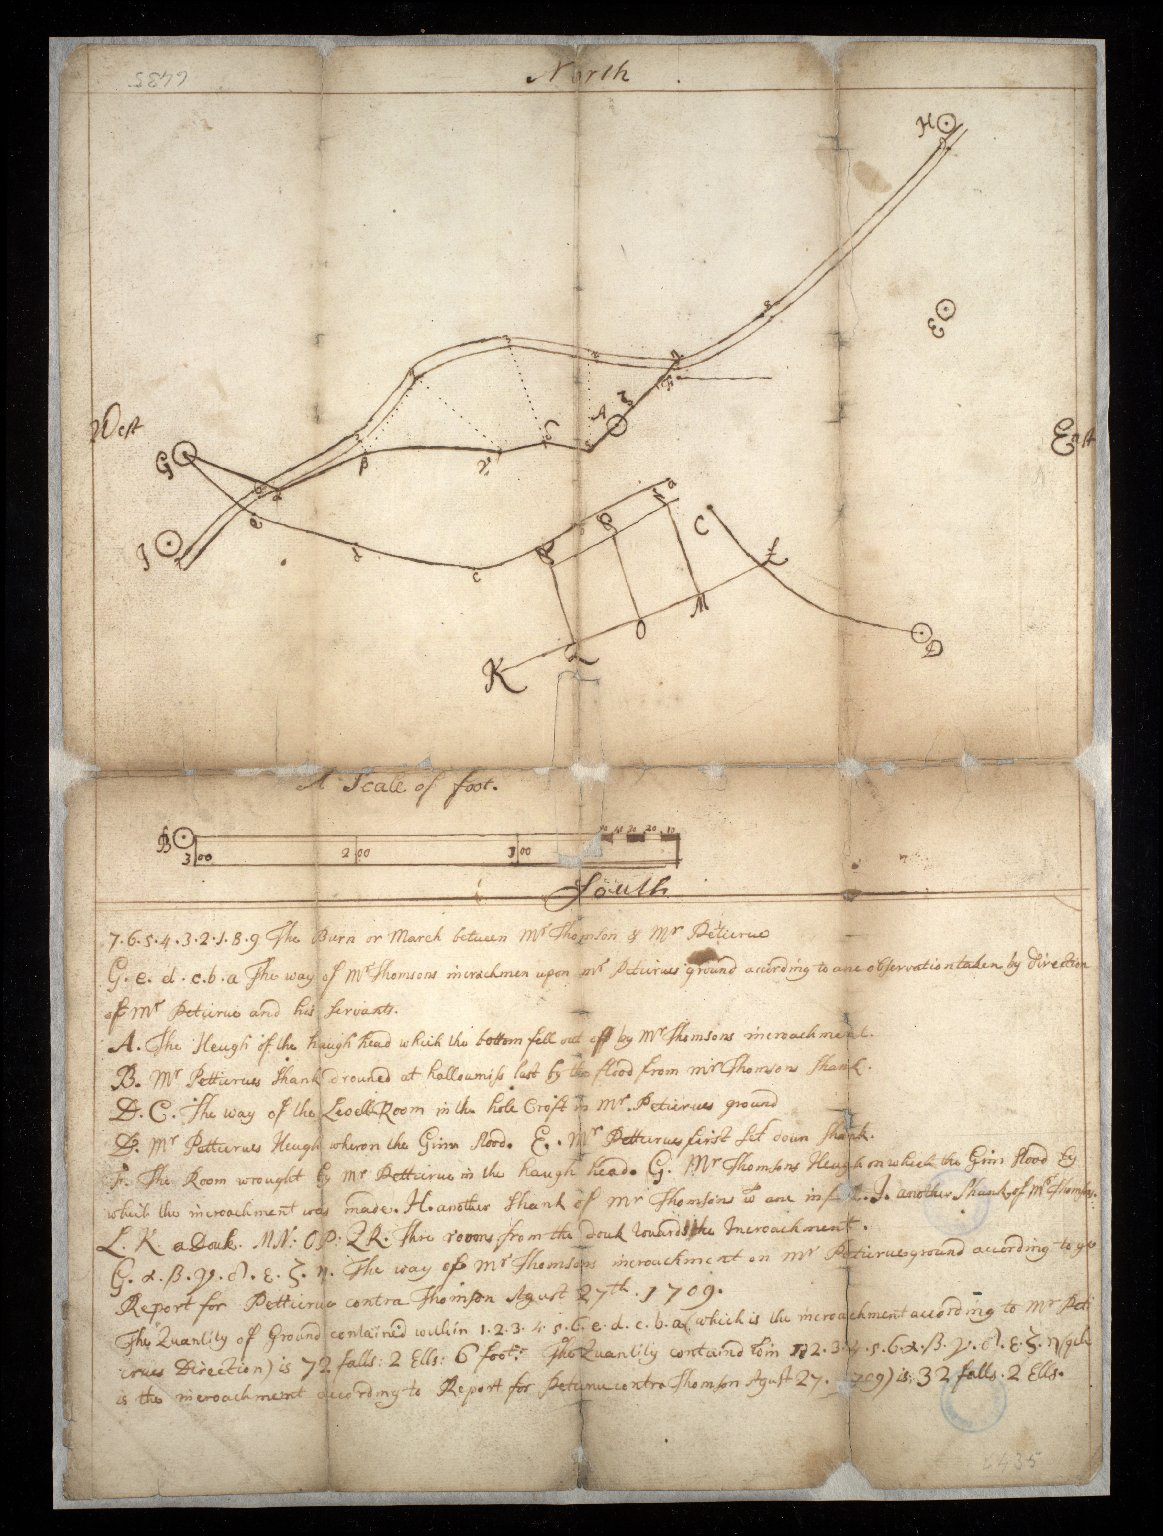 [Sketch plan illustrating a dispute over a march between Mr. Thomson and Mr. Peticure] [1 of 1]